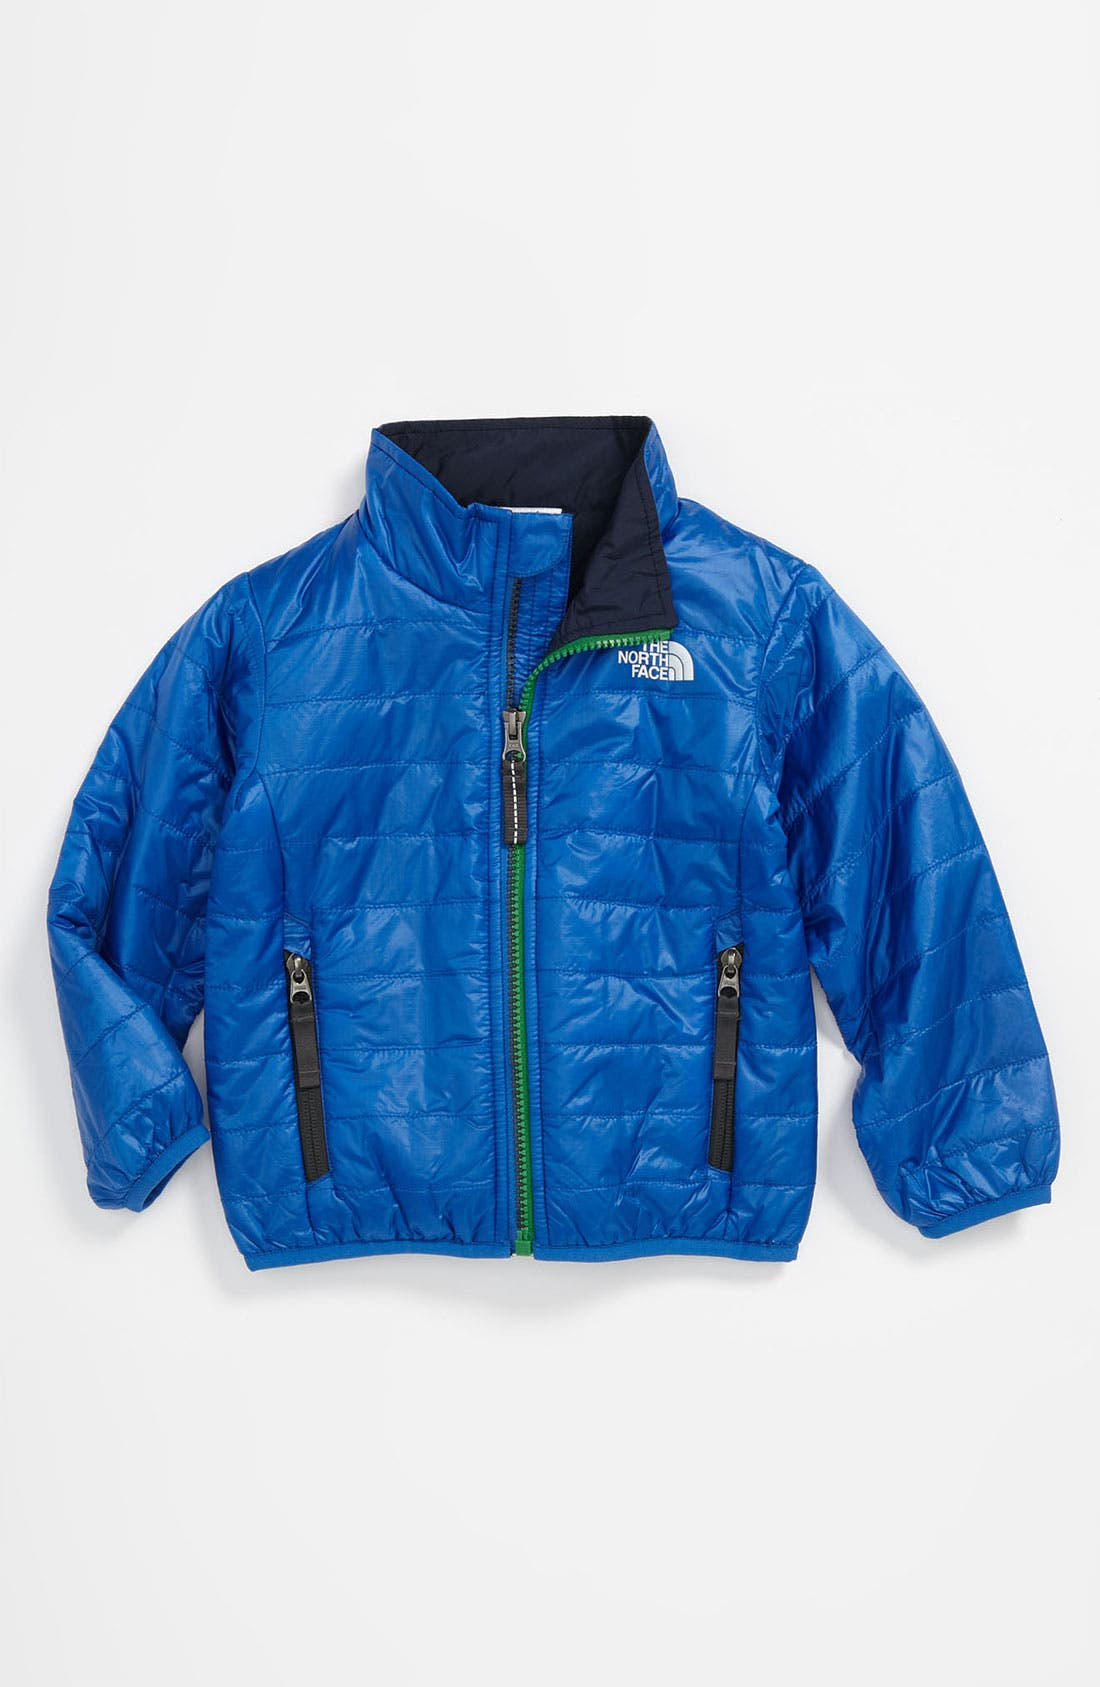 Alternate Image 1 Selected - The North Face 'Blaze' Jacket (Toddler)